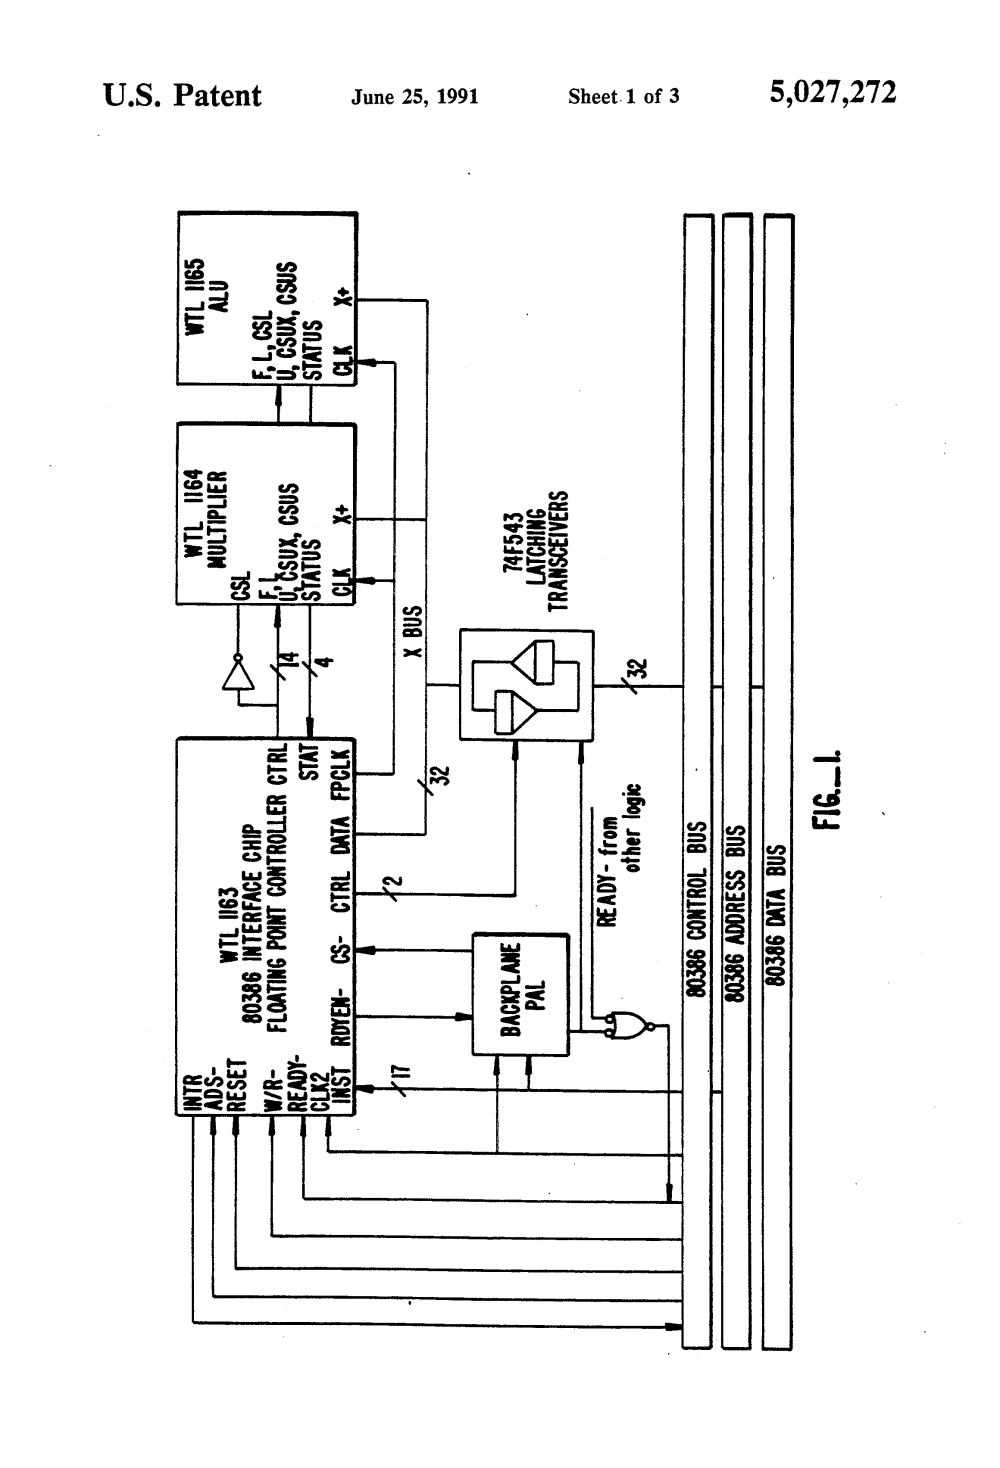 medium resolution of patent us5027272 method and apparatus for performing double patent drawing introduction to 80386